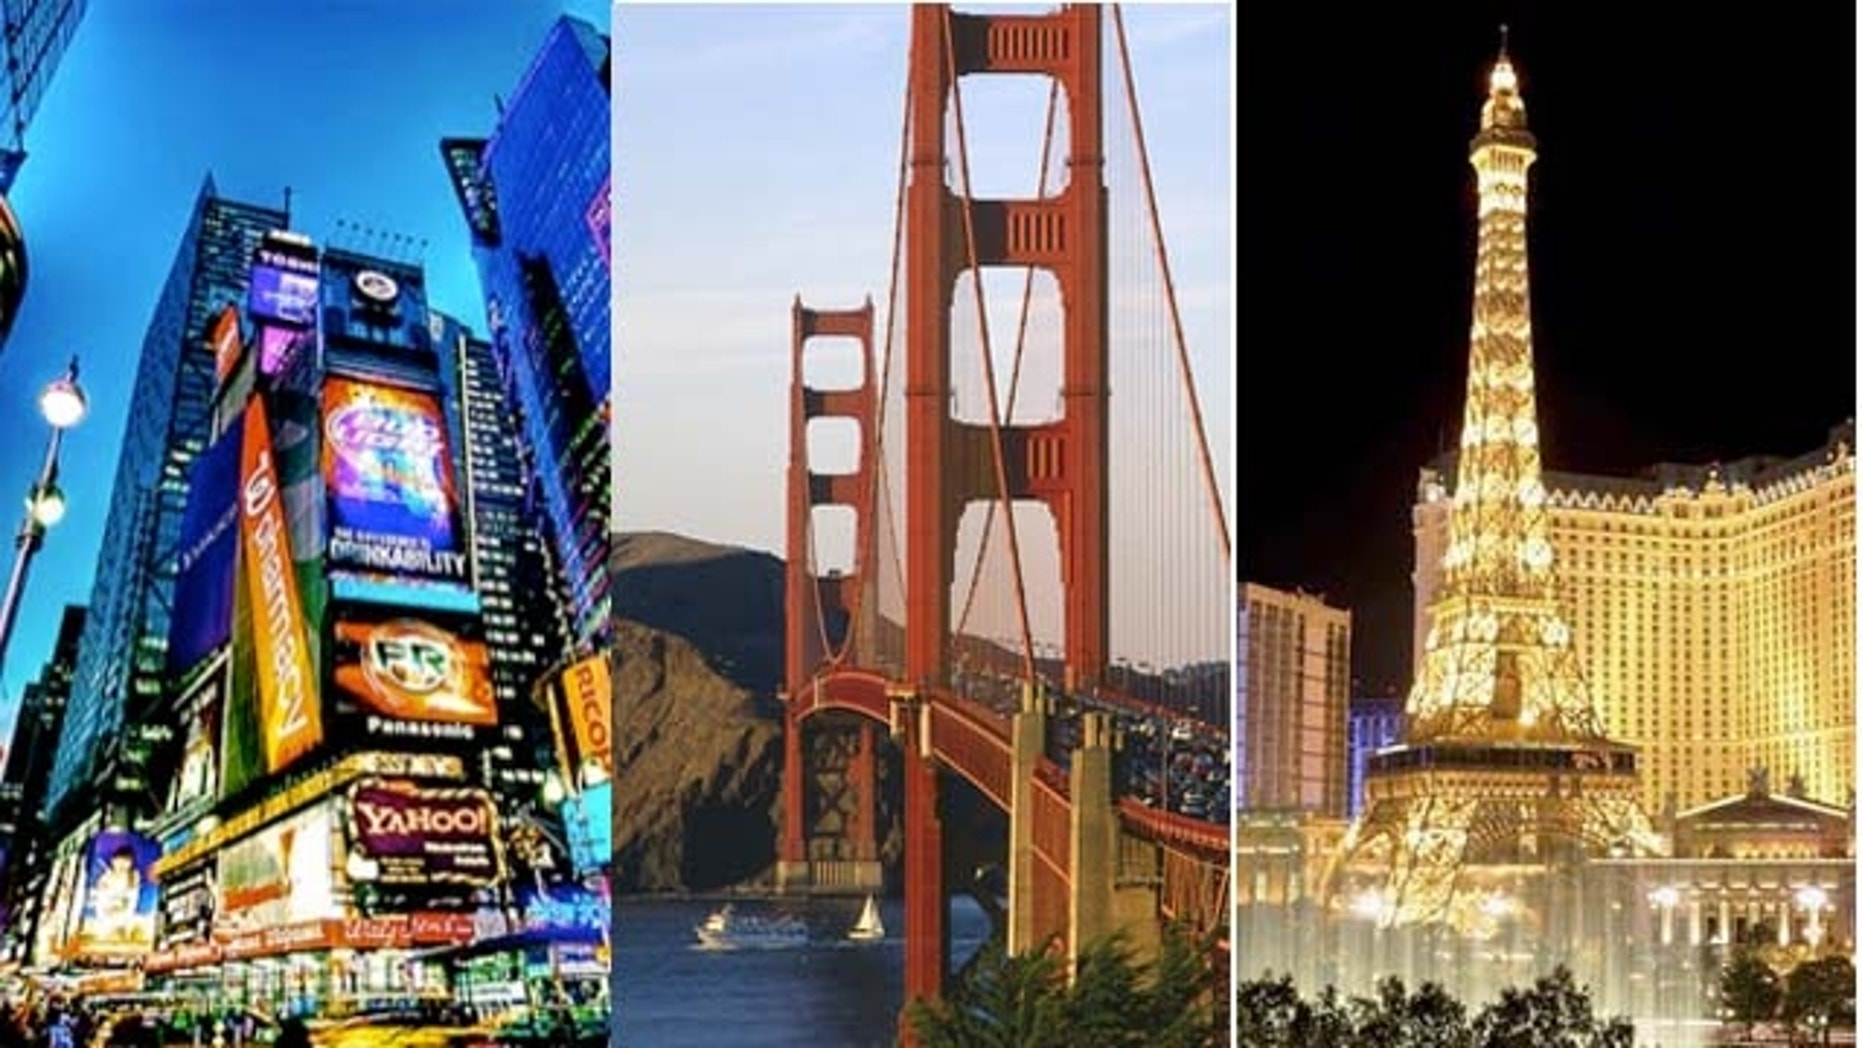 New York City, San Francisco and Las Vegas were the top three U.S. destinations for 2012, according to TripAdvisor.